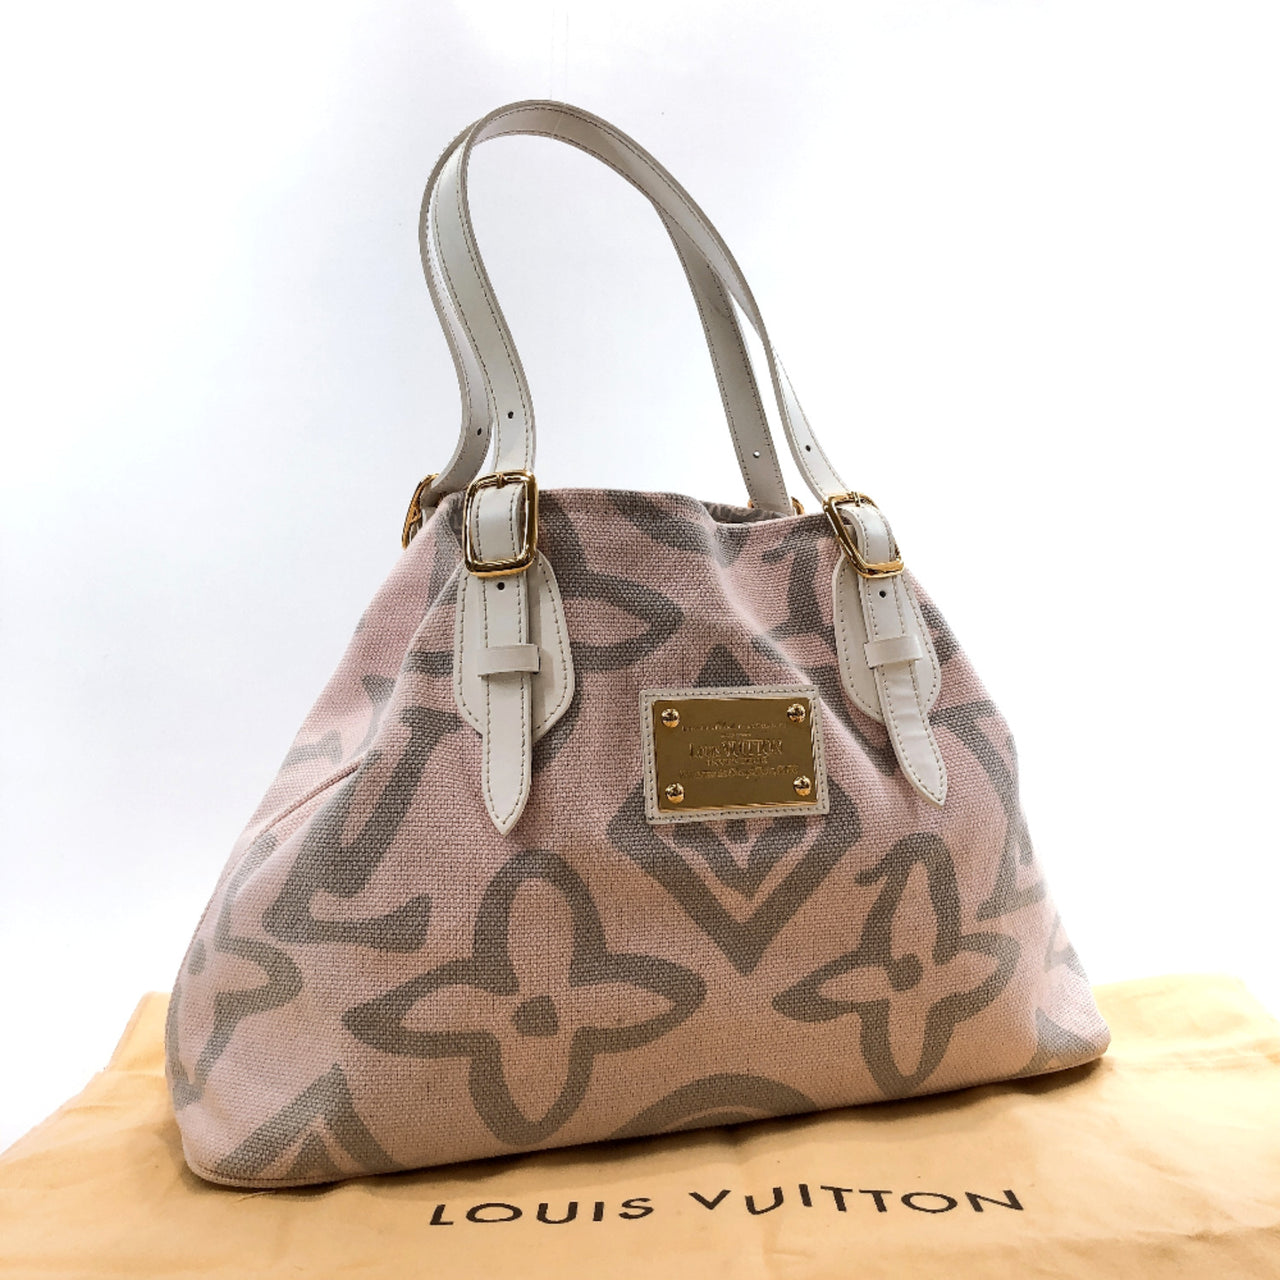 LOUIS VUITTON Tote Bag M95672 Taicienne PM canvas pink Women Used